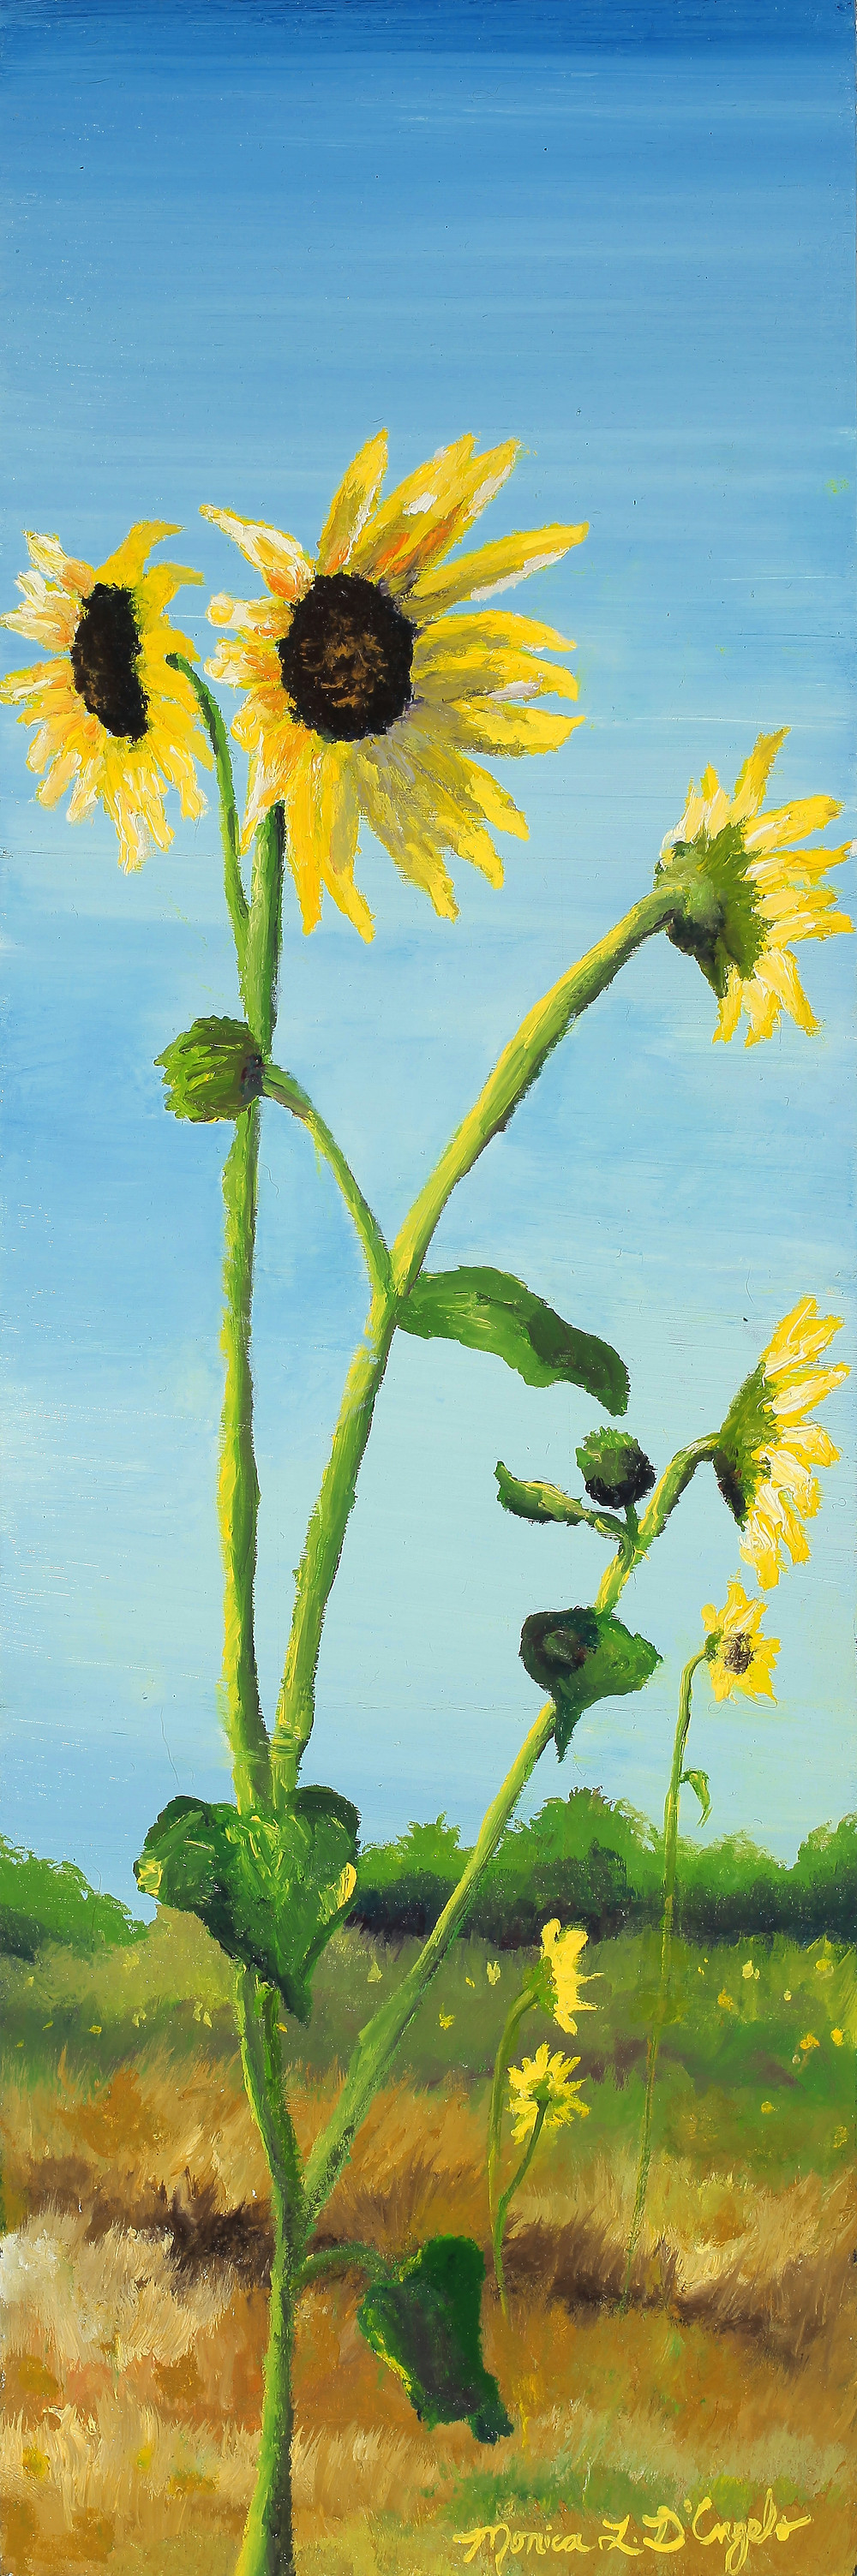 Sunflowers, original oil painting by Monica D'Angelo